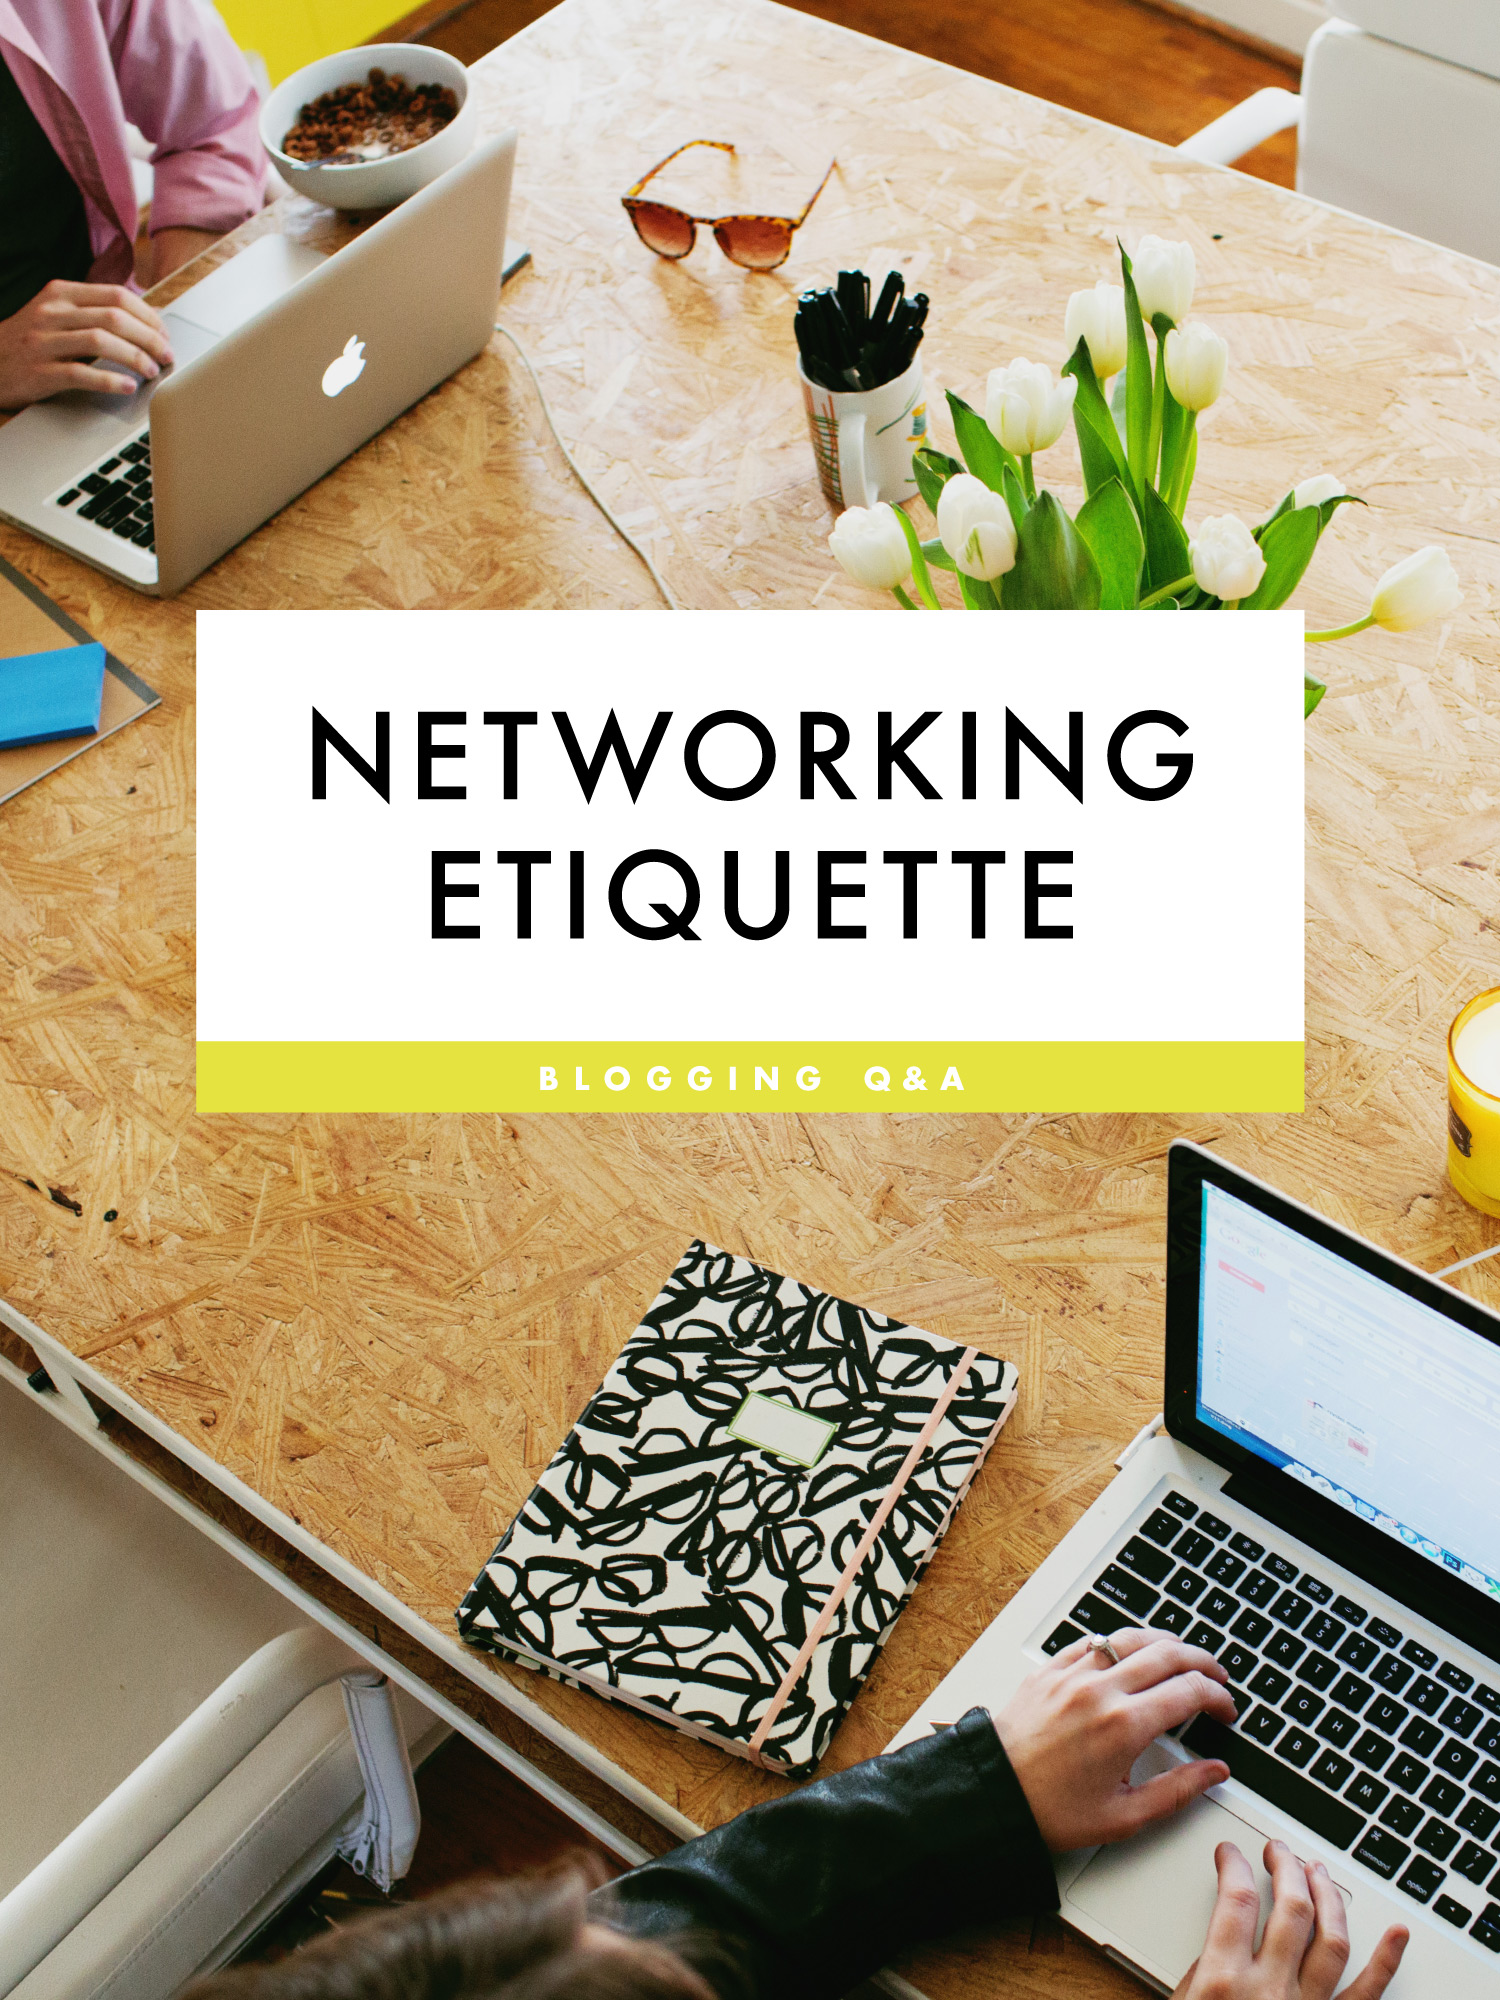 Networking ettiquette